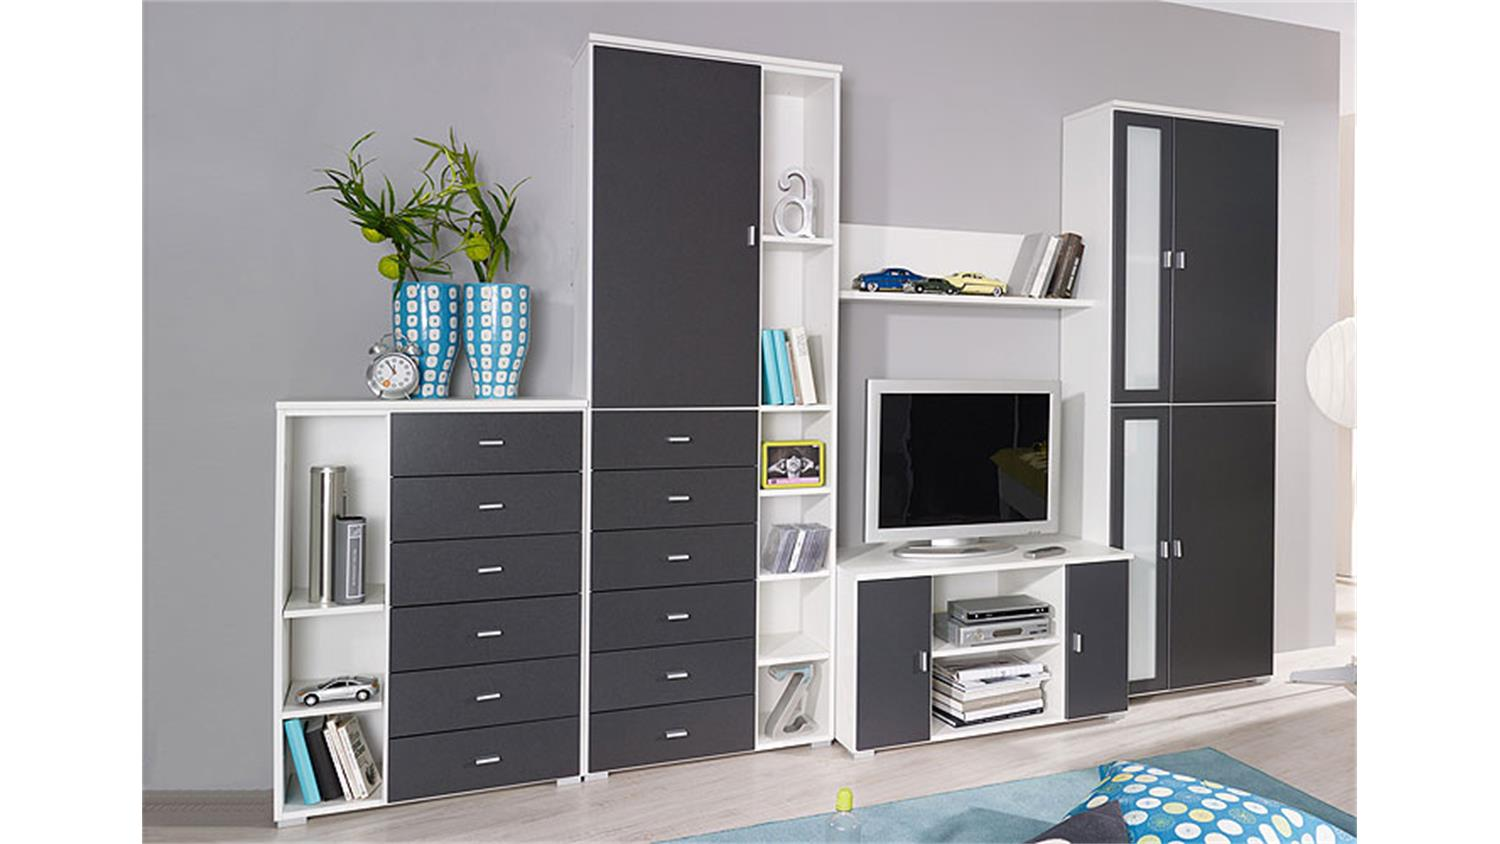 wohnwand chica in alpinwei und grau metallic 5 teilig. Black Bedroom Furniture Sets. Home Design Ideas